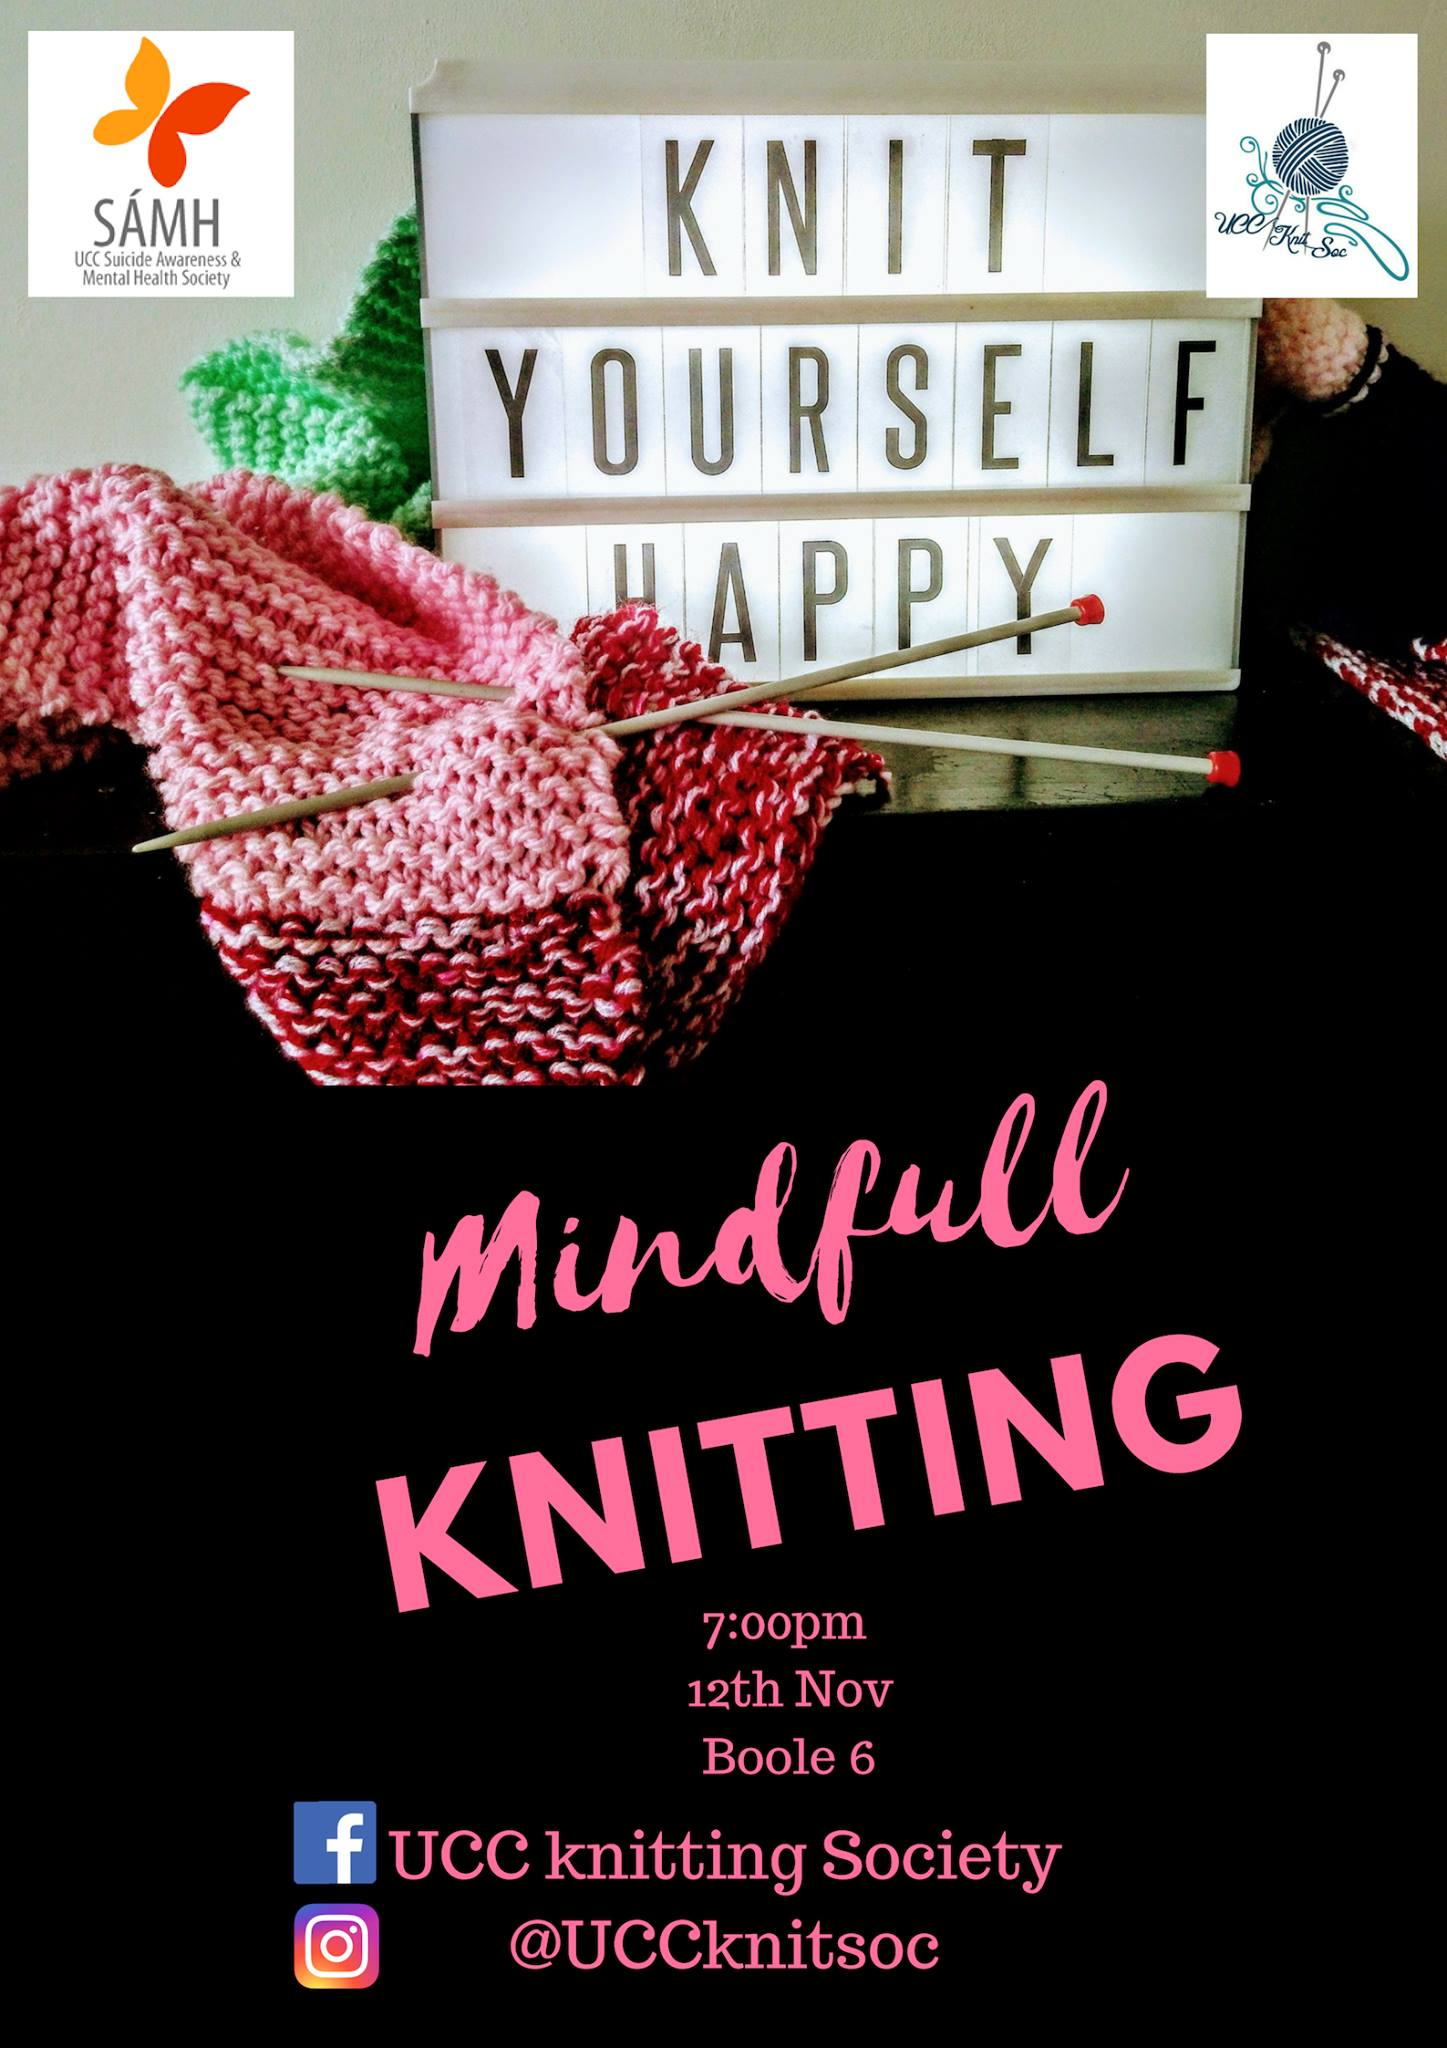 Mindfull Knitting - 12th November